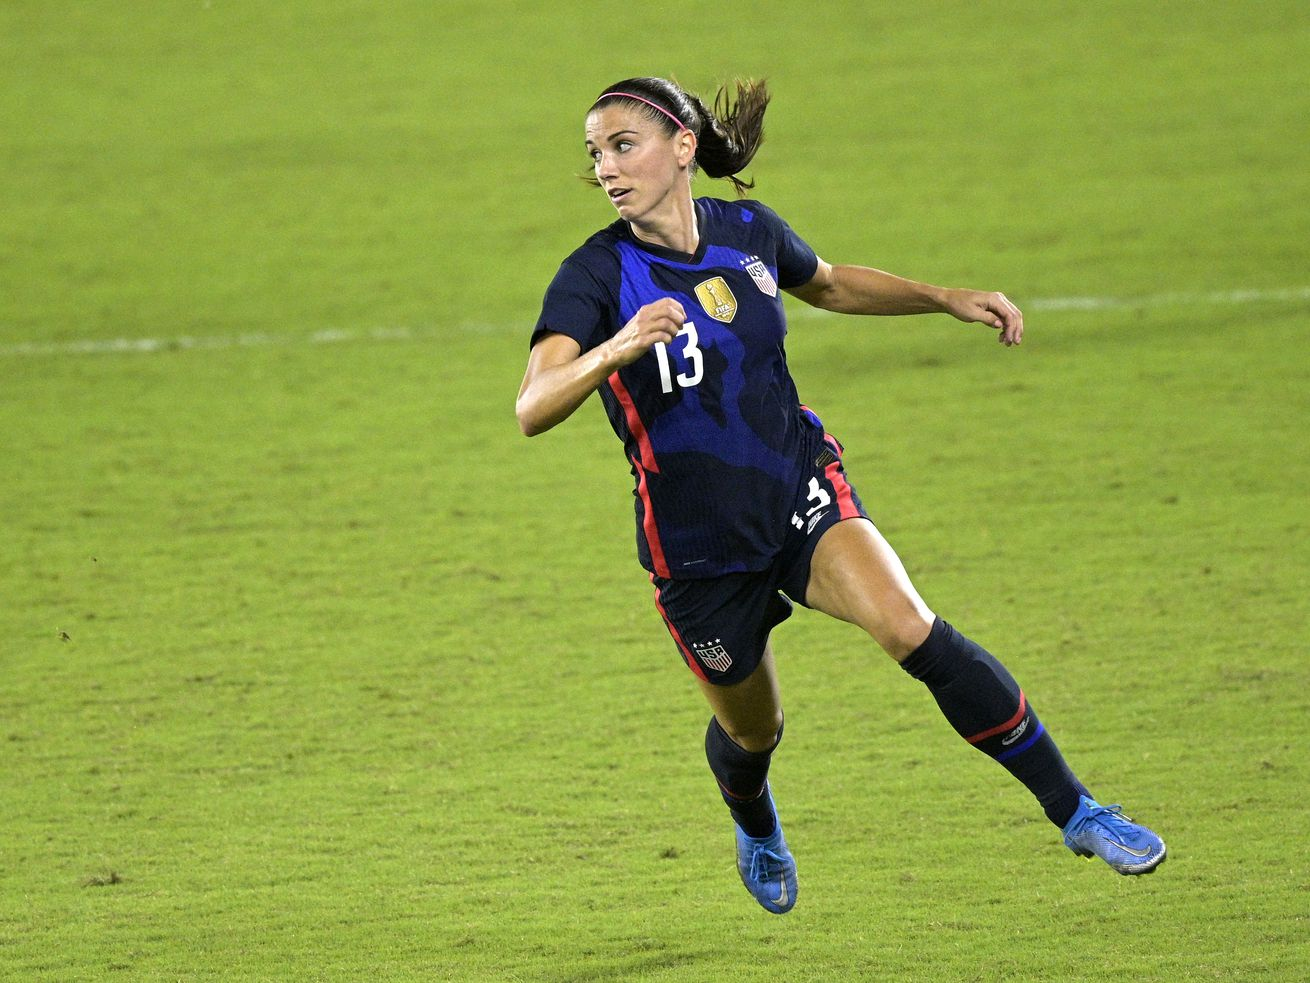 Alex Morgan and other U.S. national soccer team players have asked a federal appeals court to overturn a lower court decision throwing out their lawsuit seeking equal pay to the men's team.